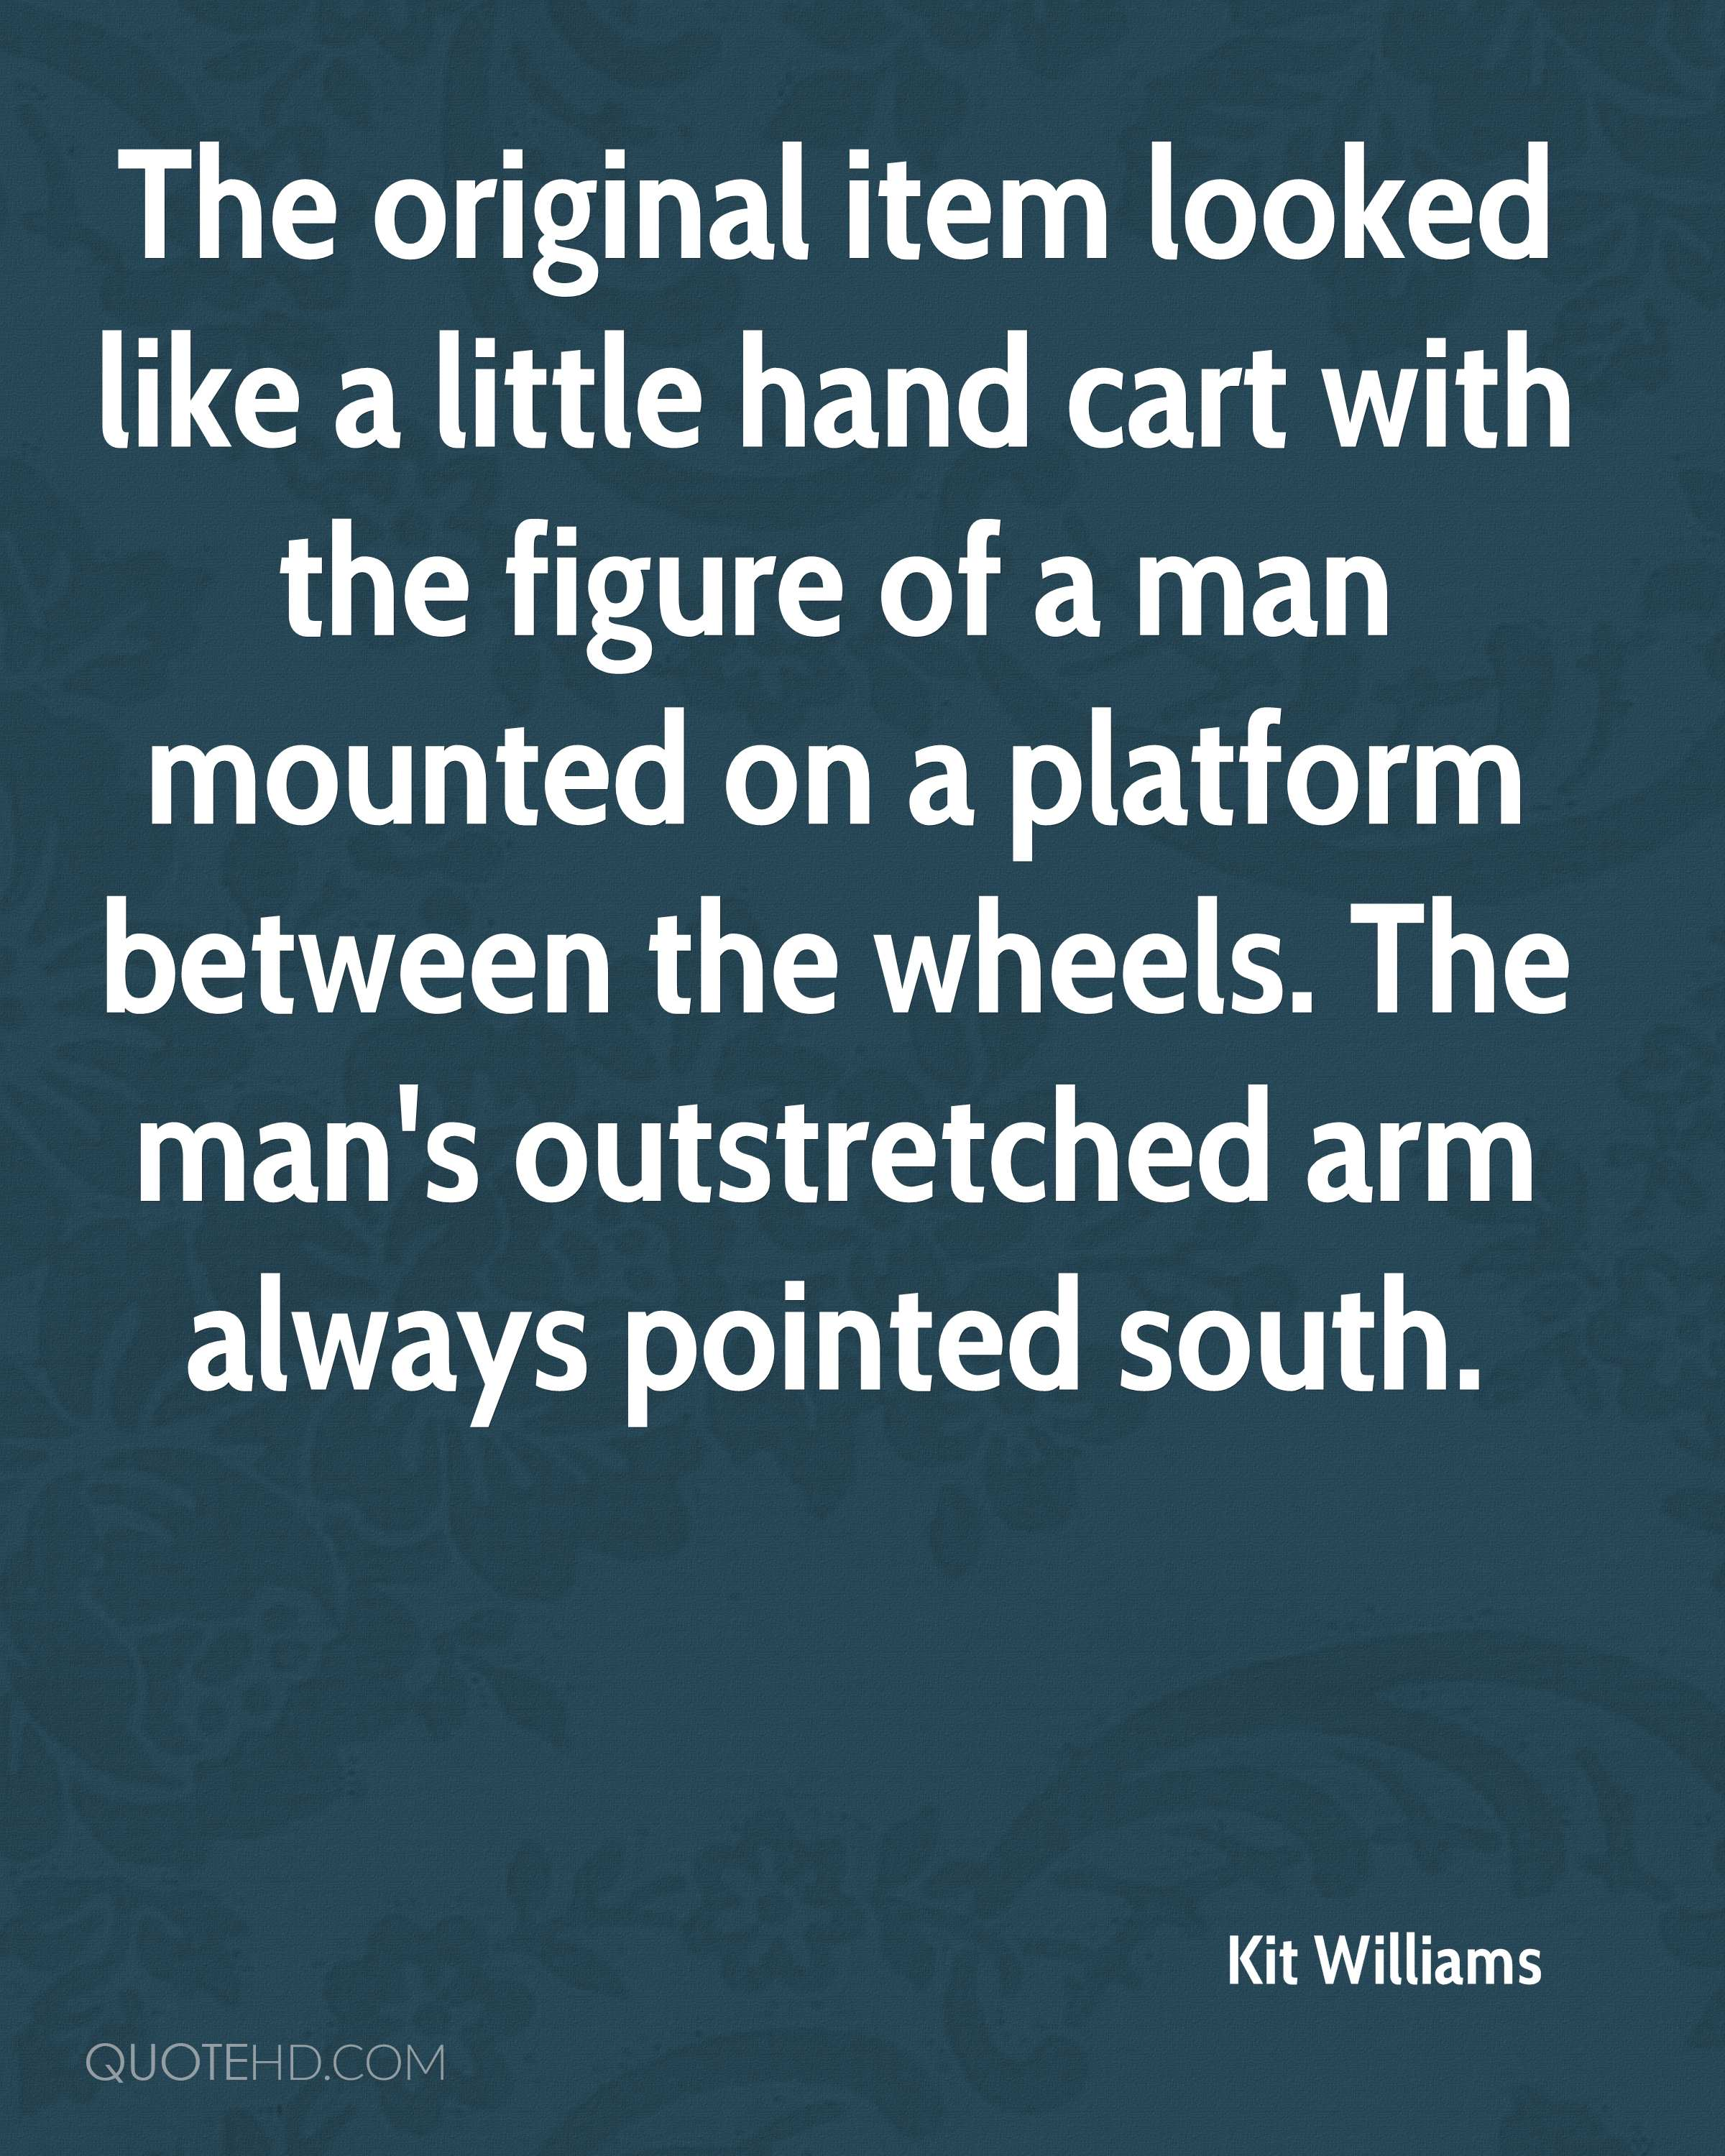 The original item looked like a little hand cart with the figure of a man mounted on a platform between the wheels. The man's outstretched arm always pointed south.